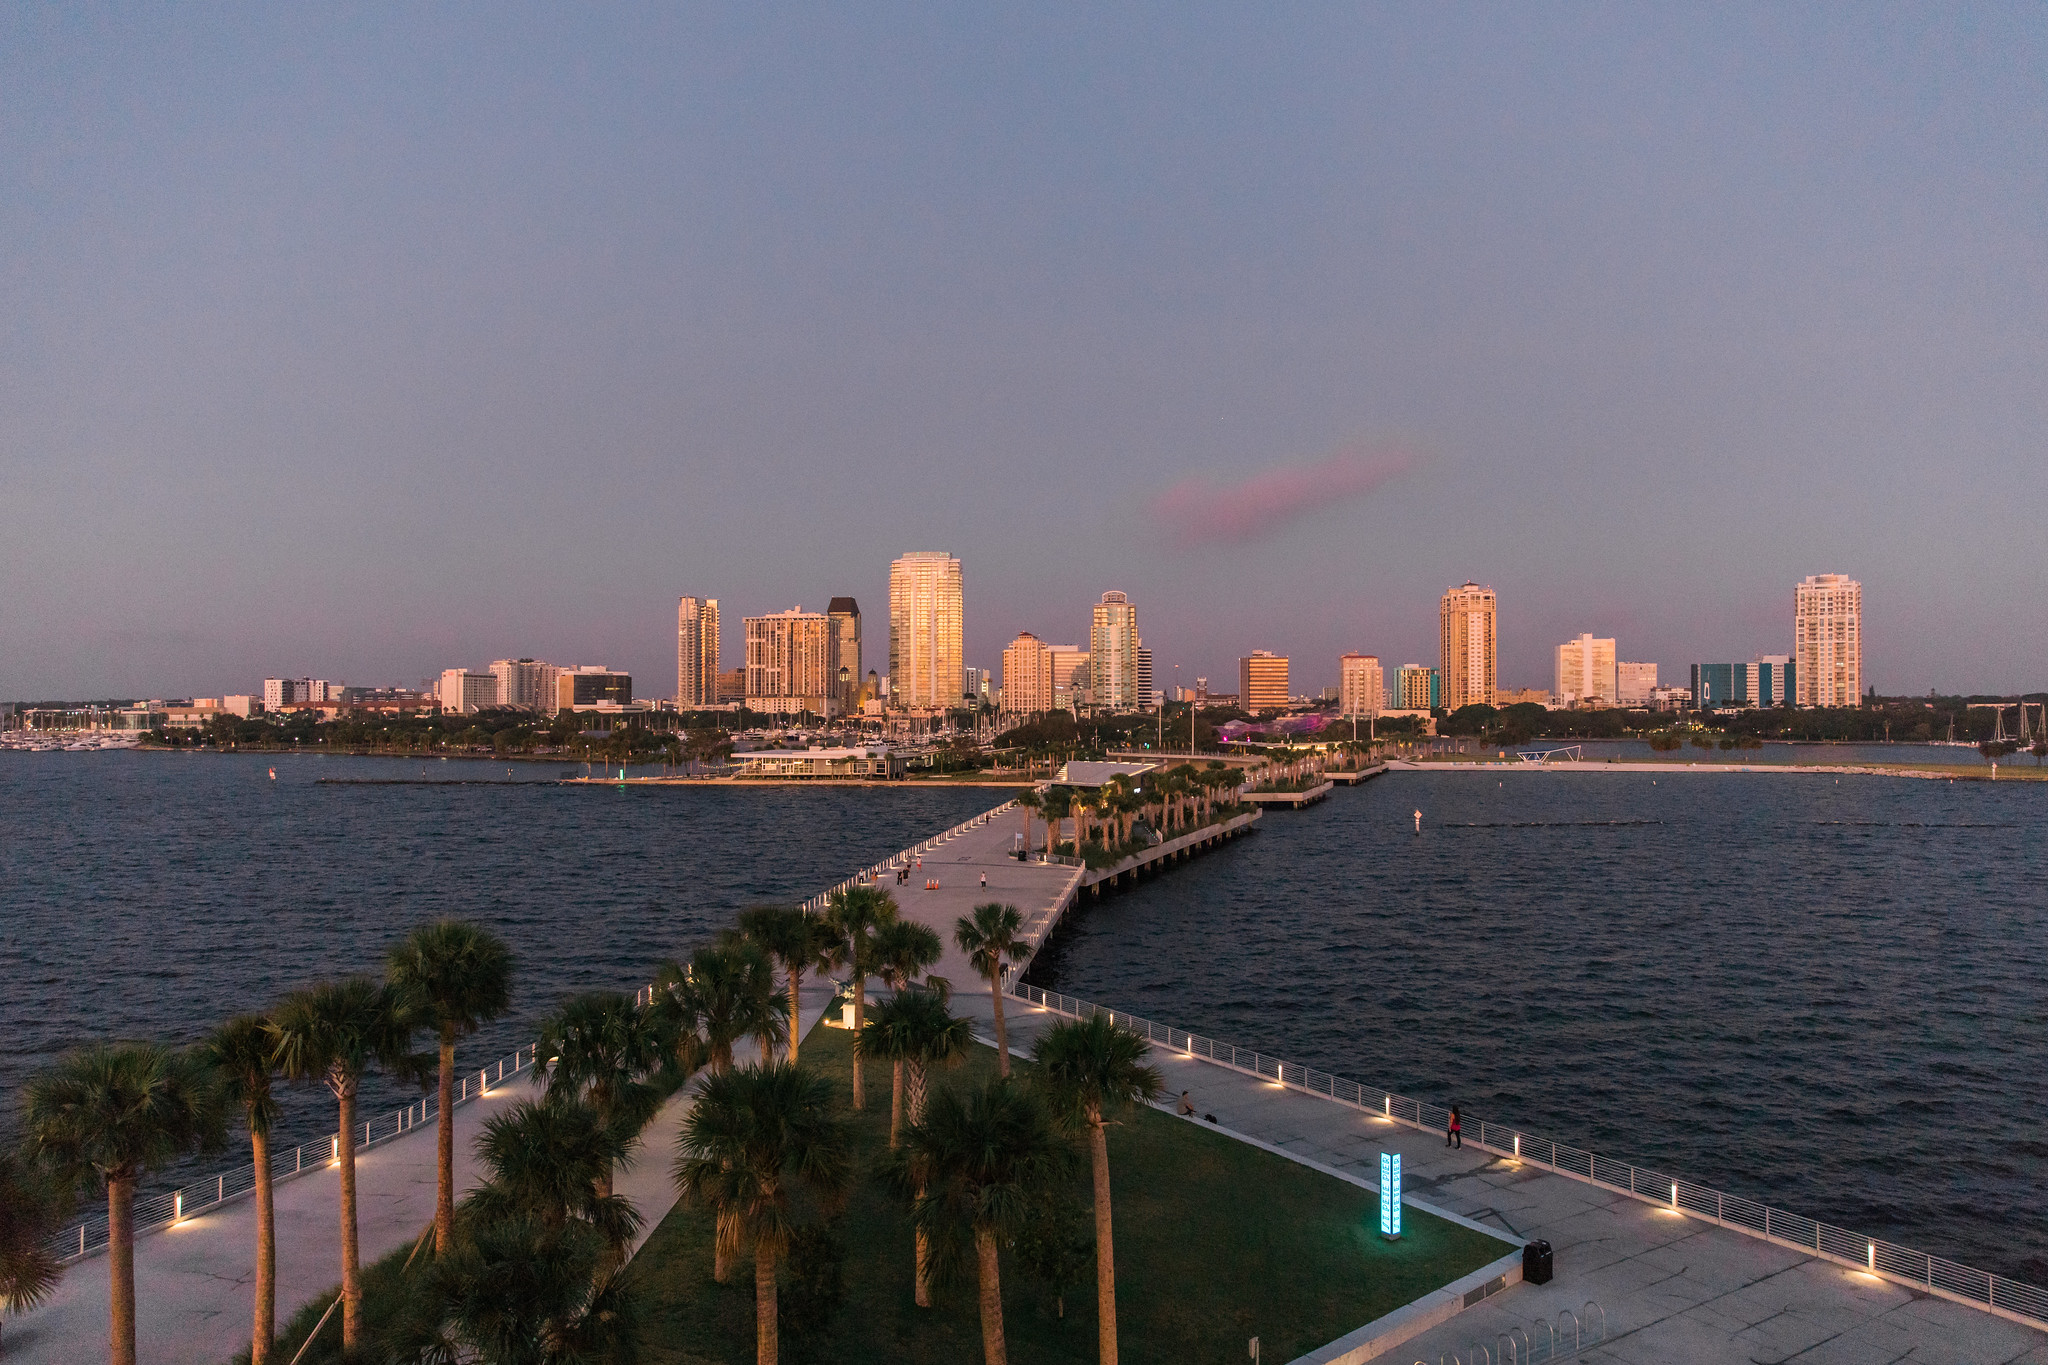 St. Pete Pier and Skyline